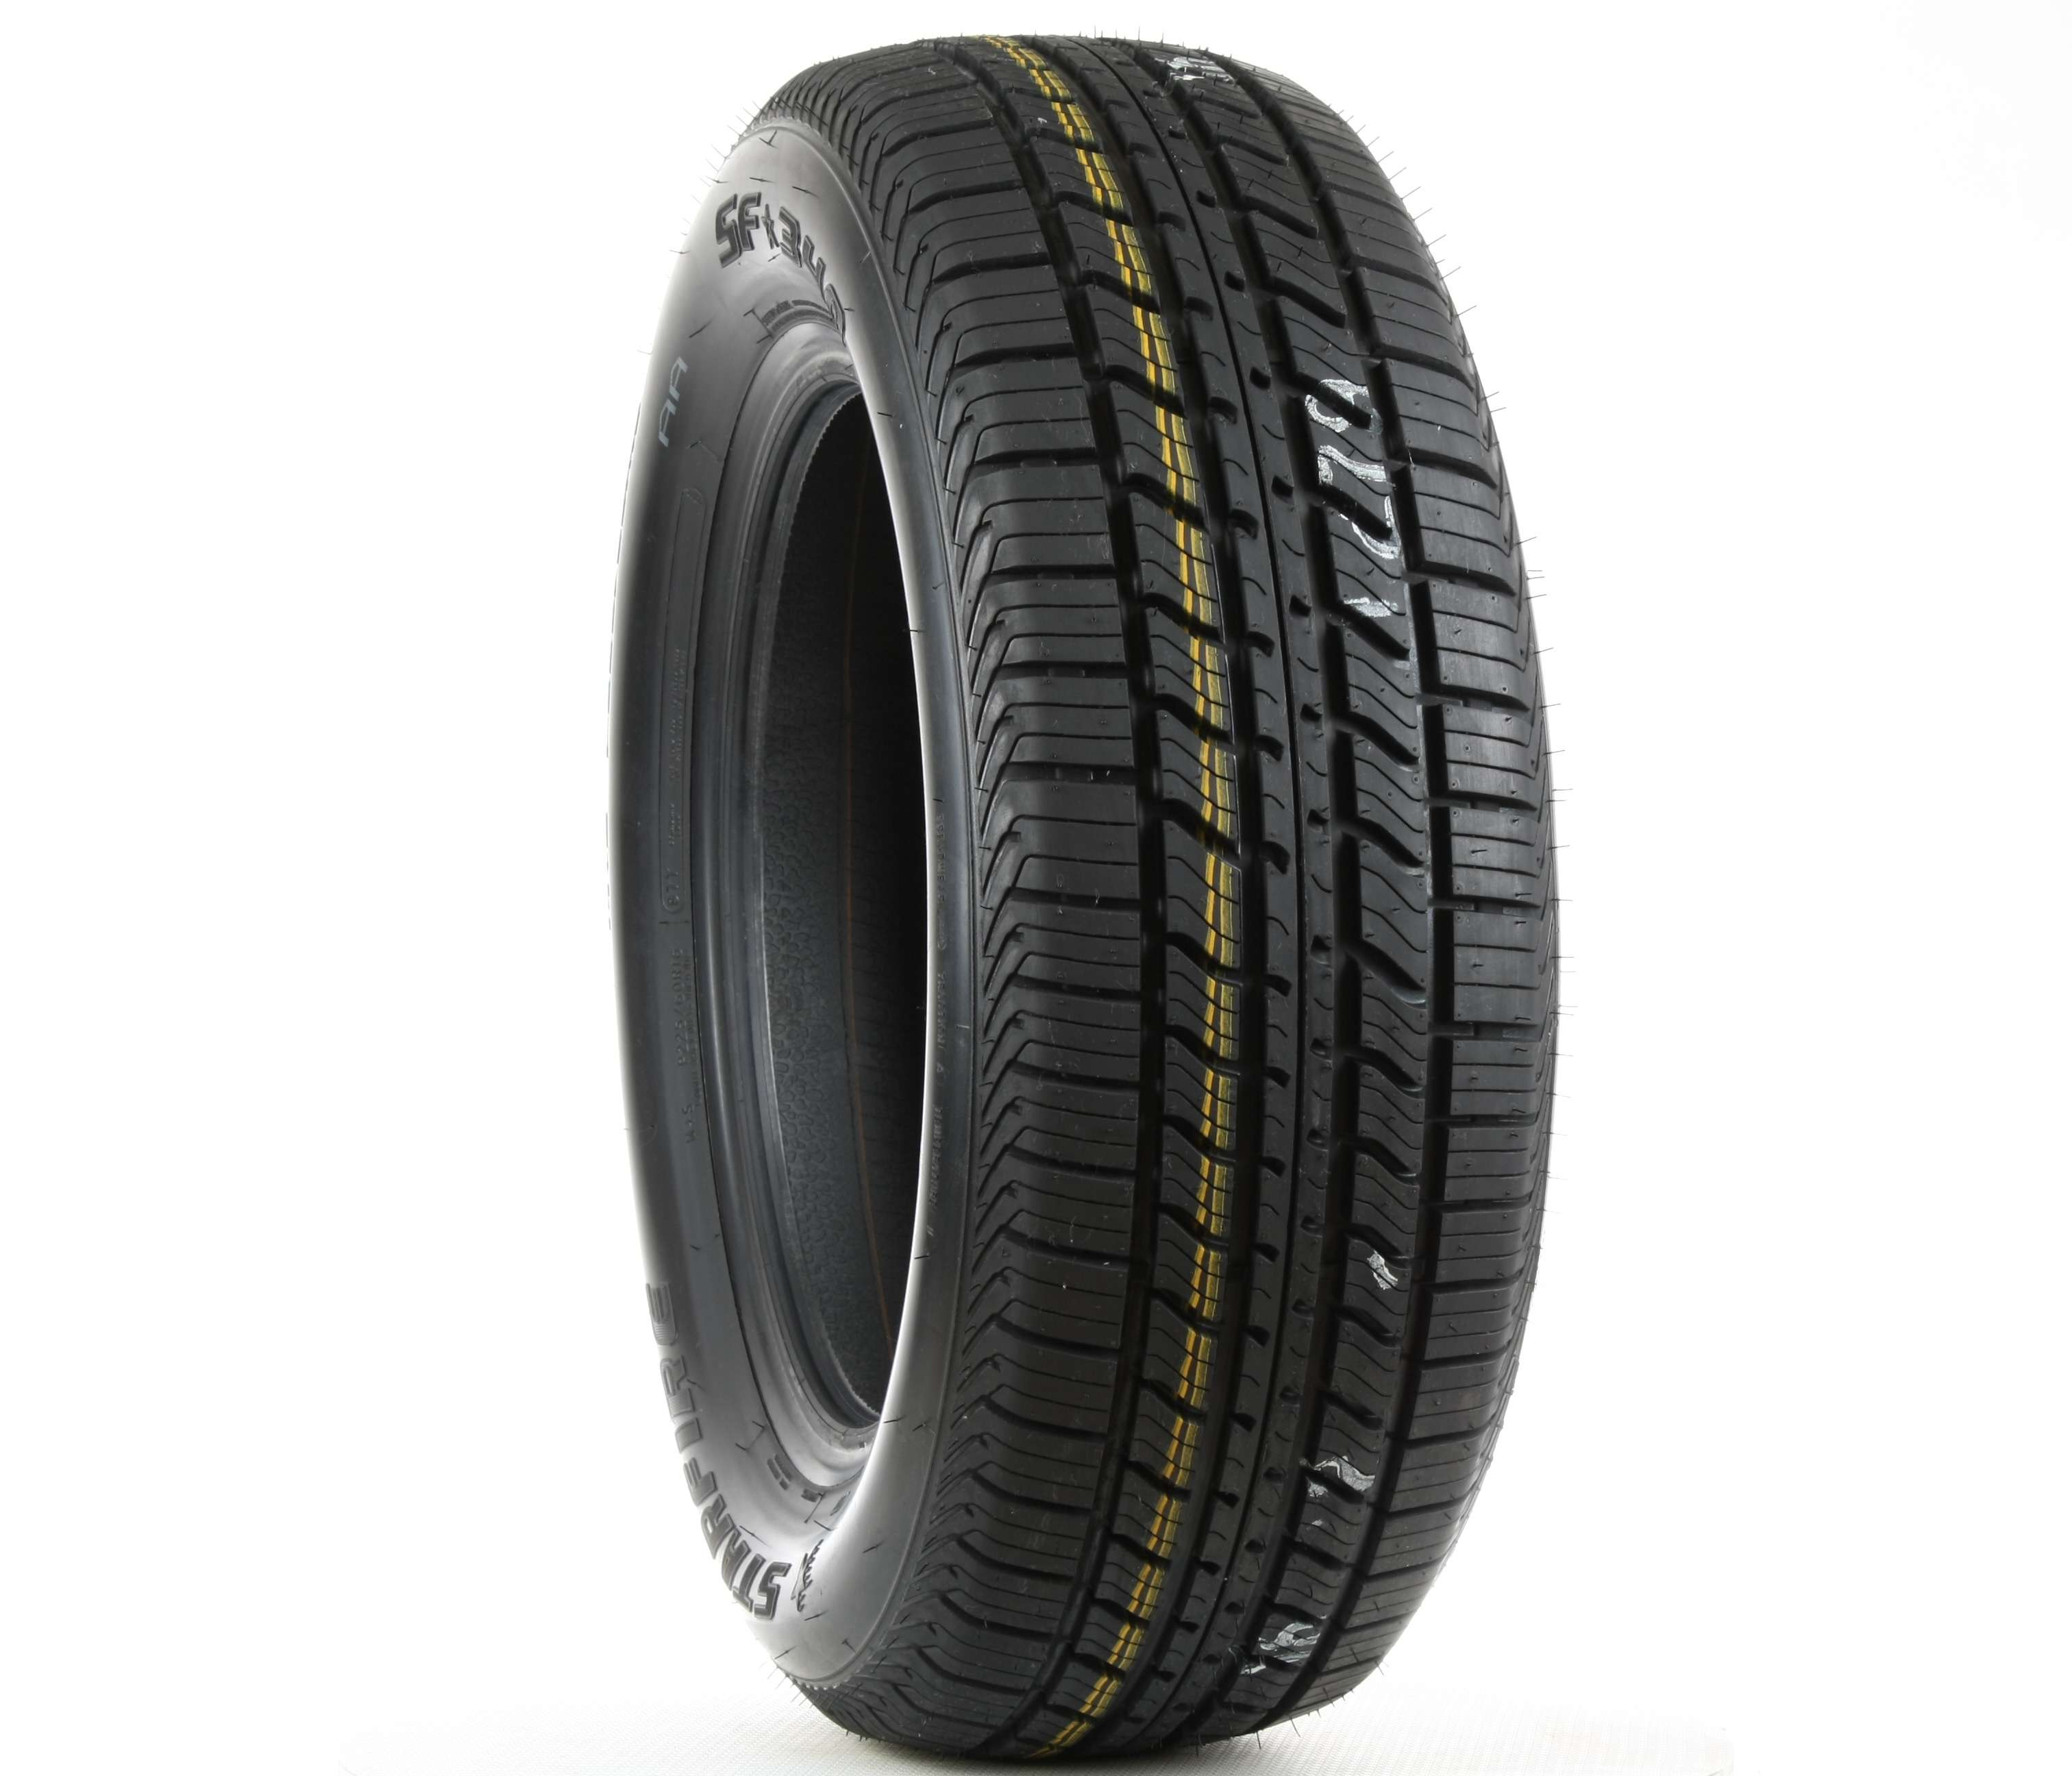 Starfire Sf 340 All Season Tire 225 60r16 97t Walmart Com